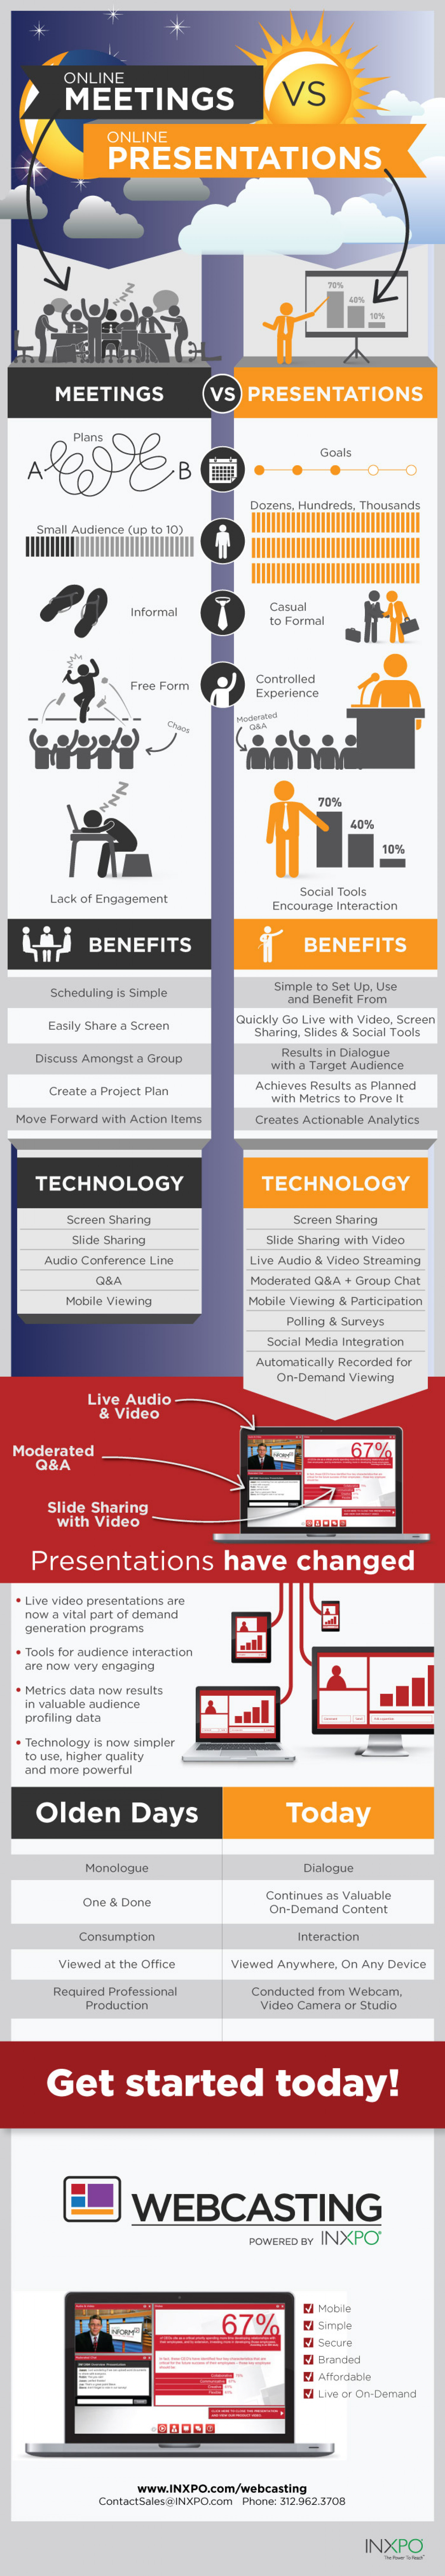 Comparing Online Meetings and Online Presentations Infographic